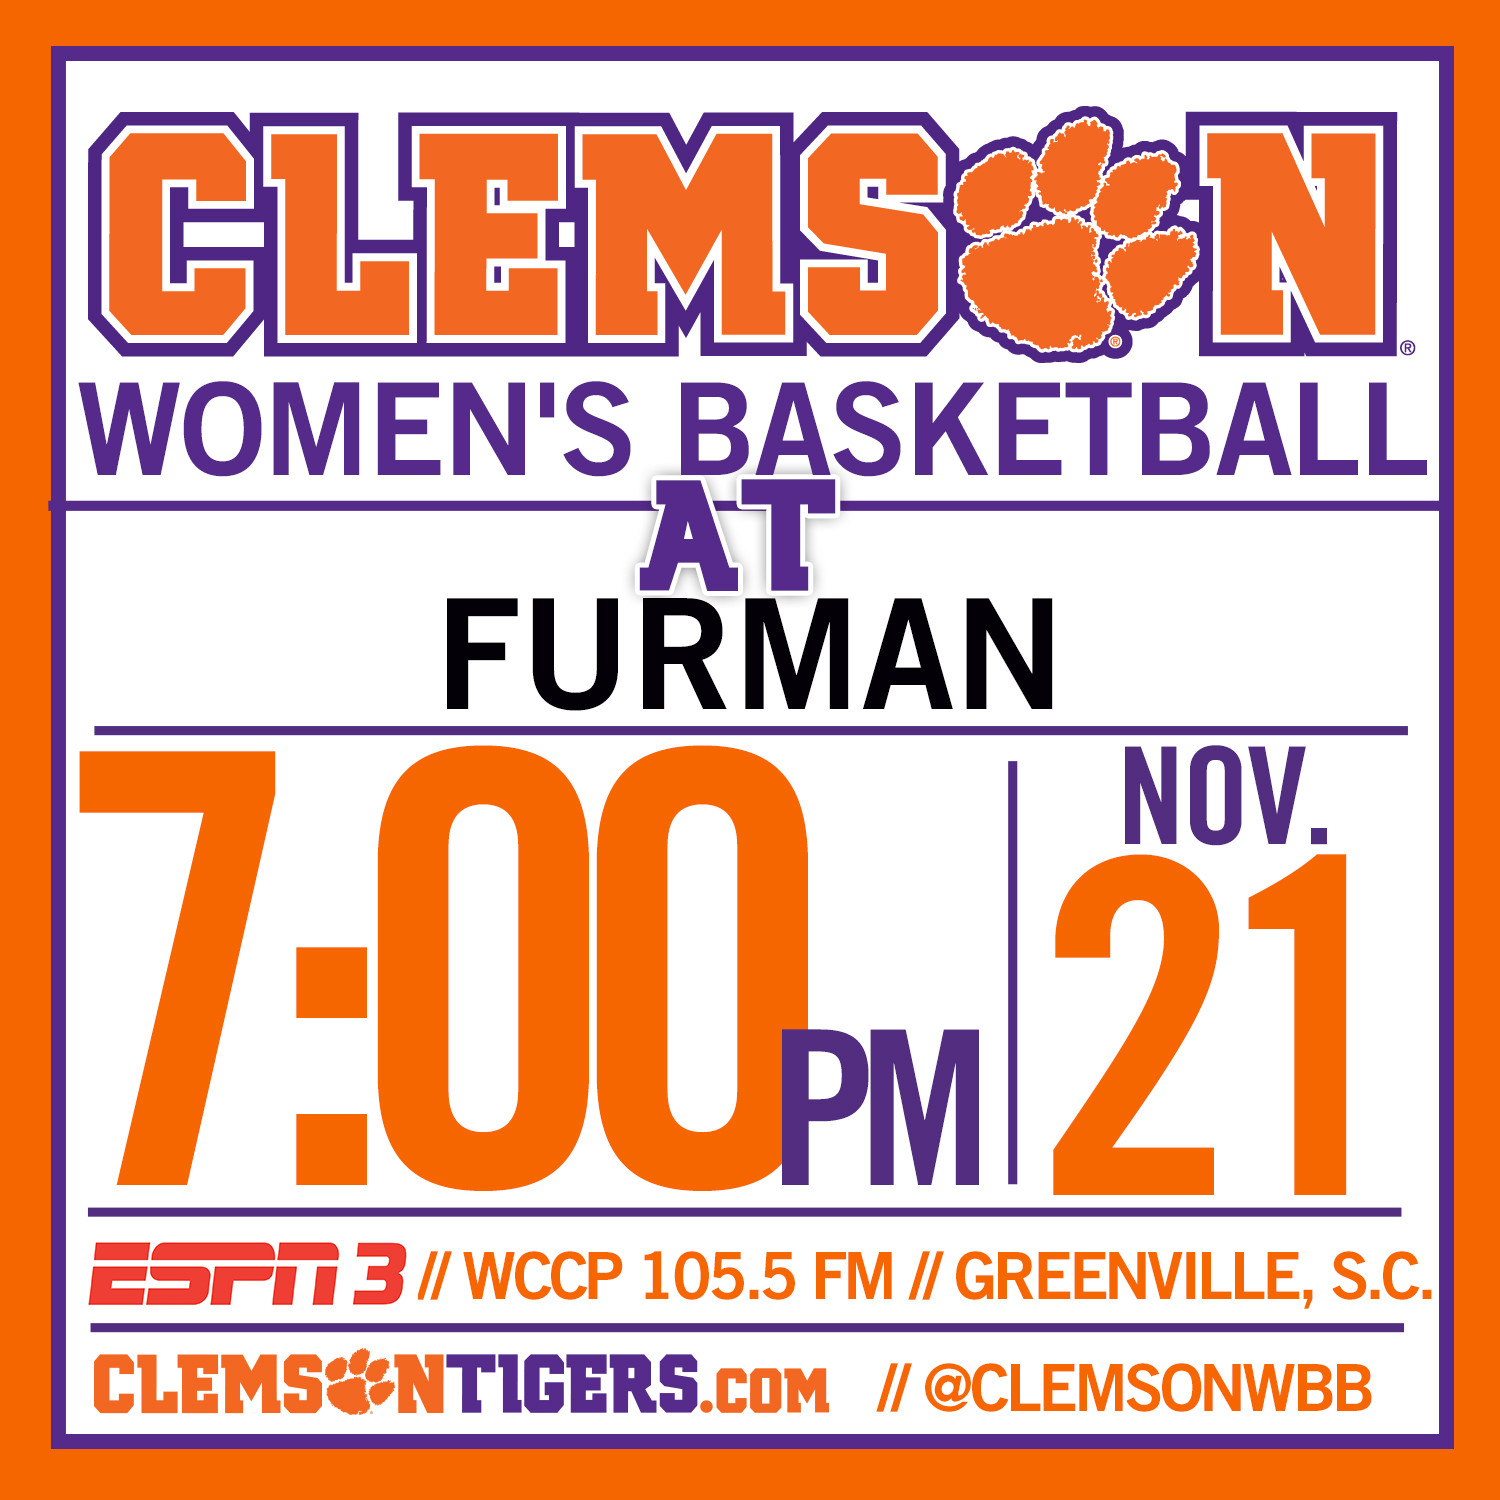 Tigers Face First Road Test at Furman